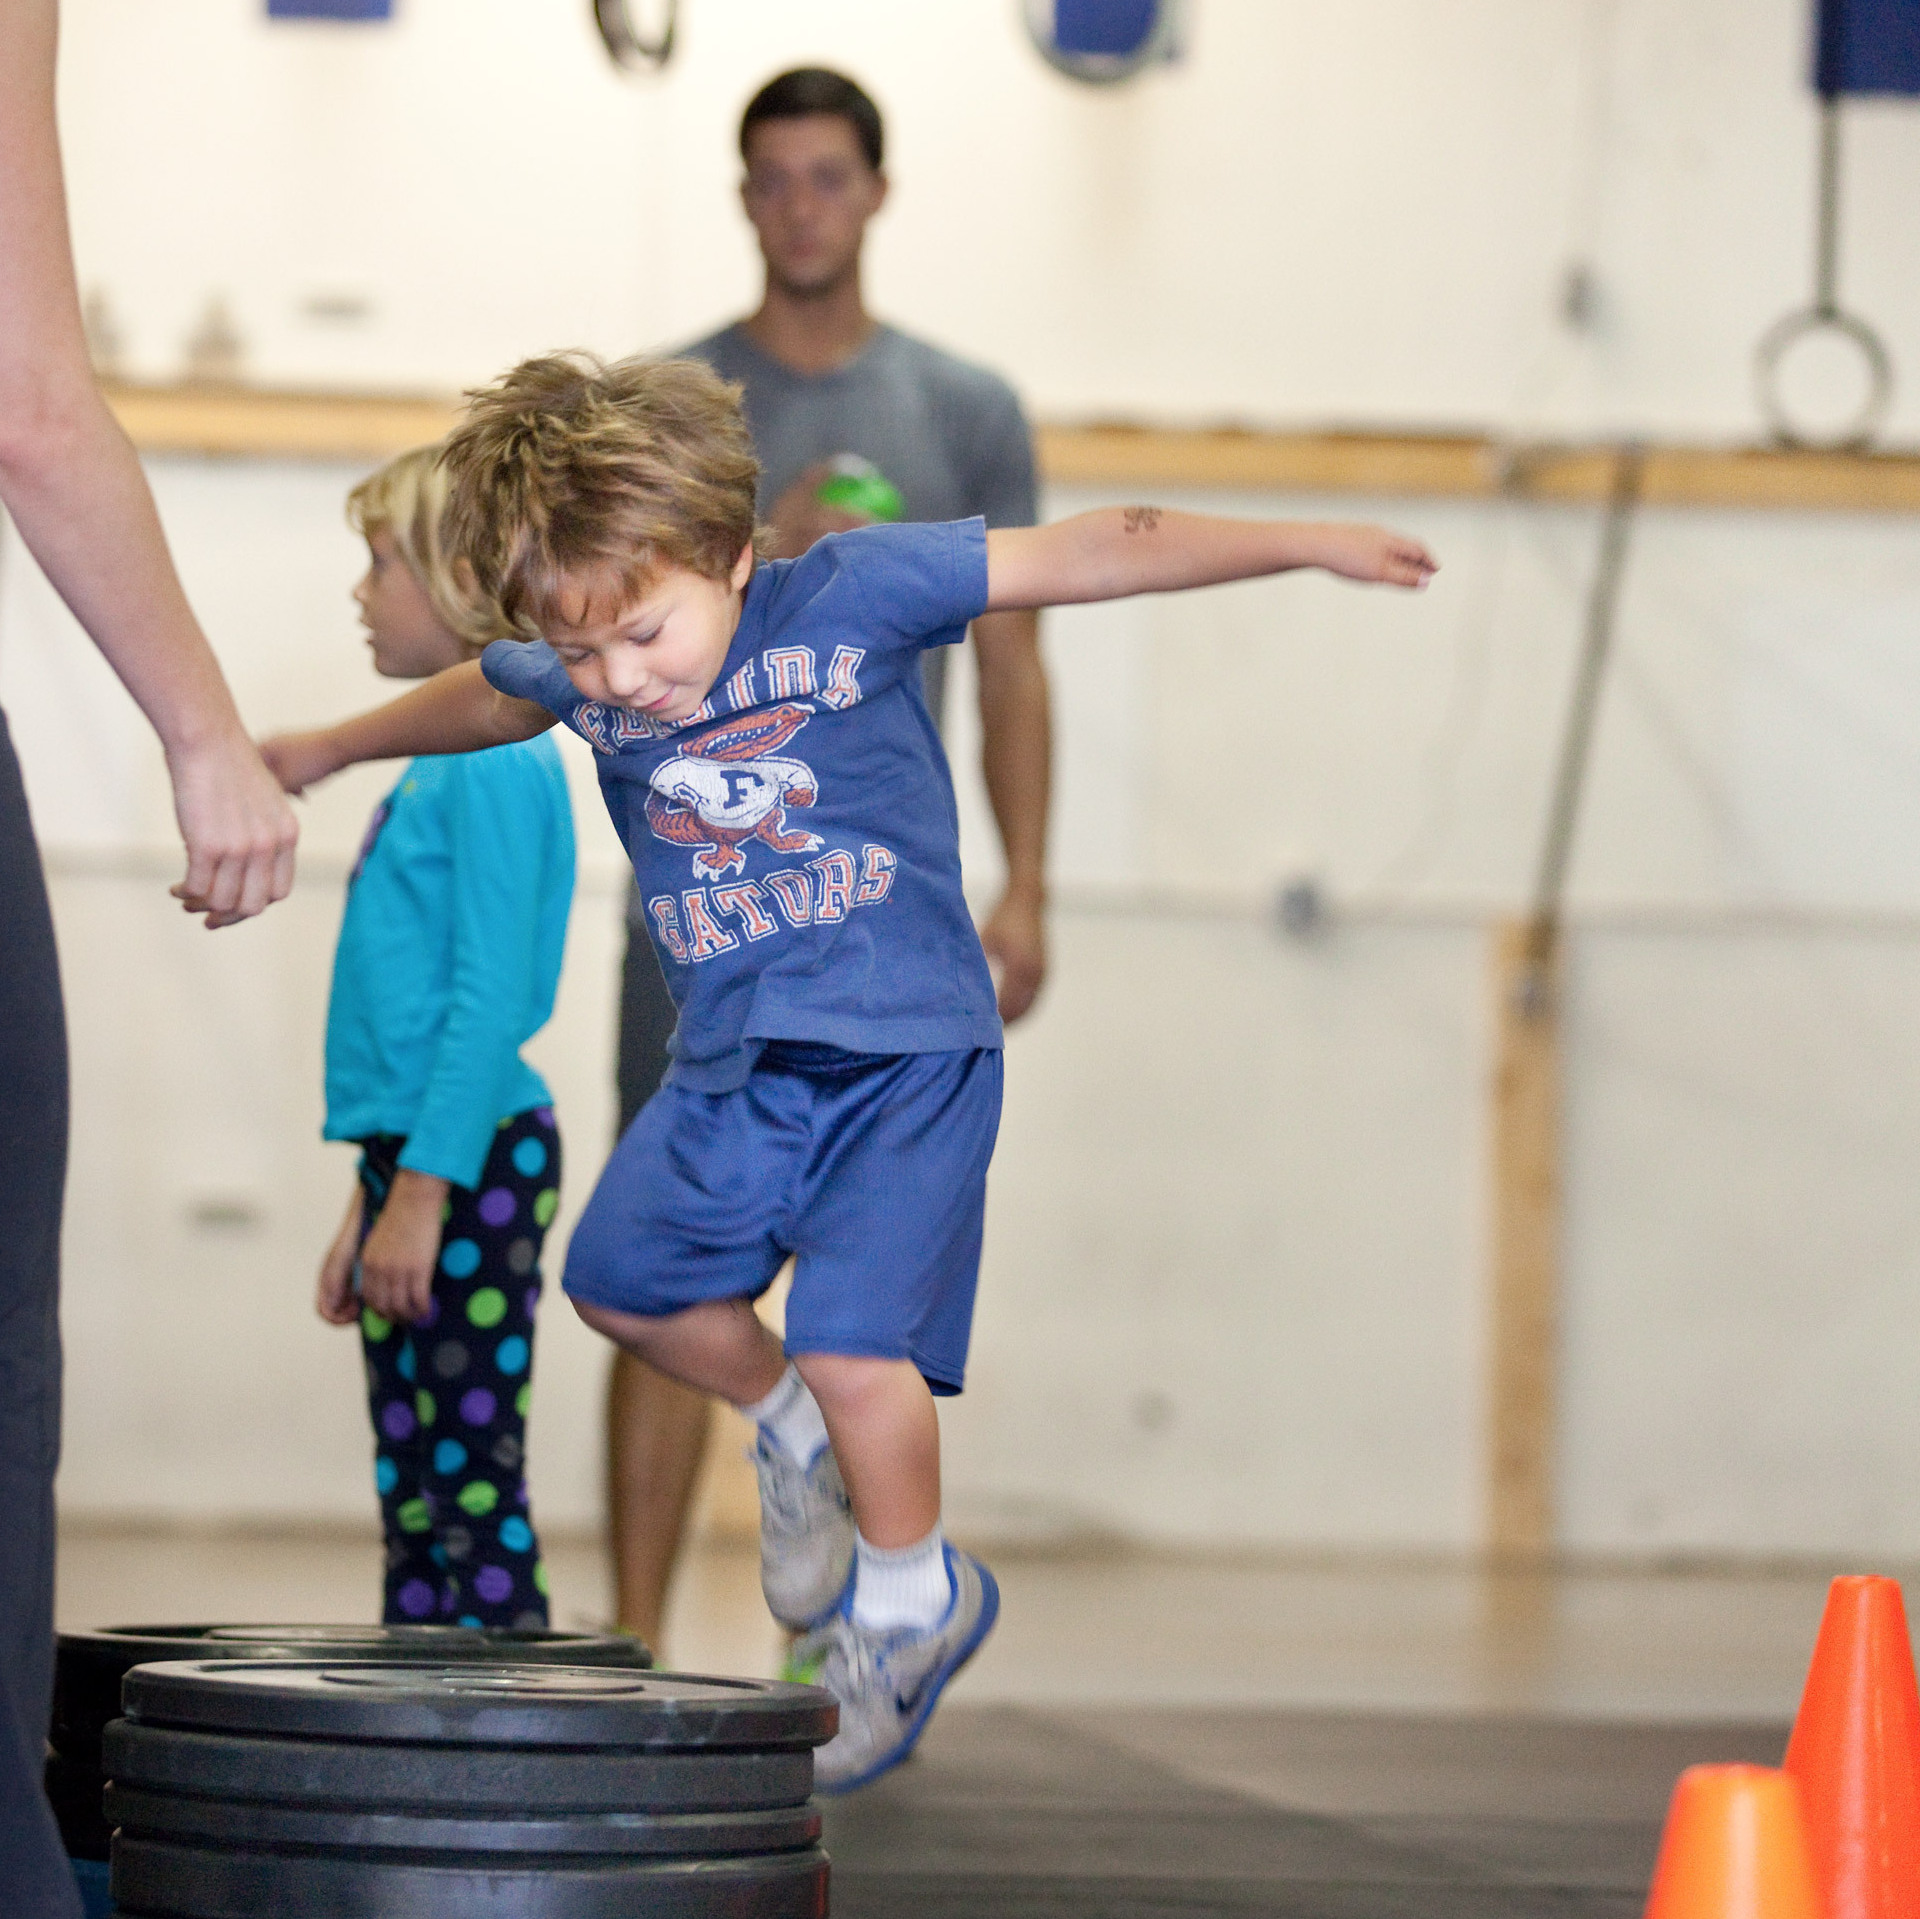 Evan Ciangiulli, 4, hops onto a stack of weights as part of his CrossFit training in Rockville, Md.